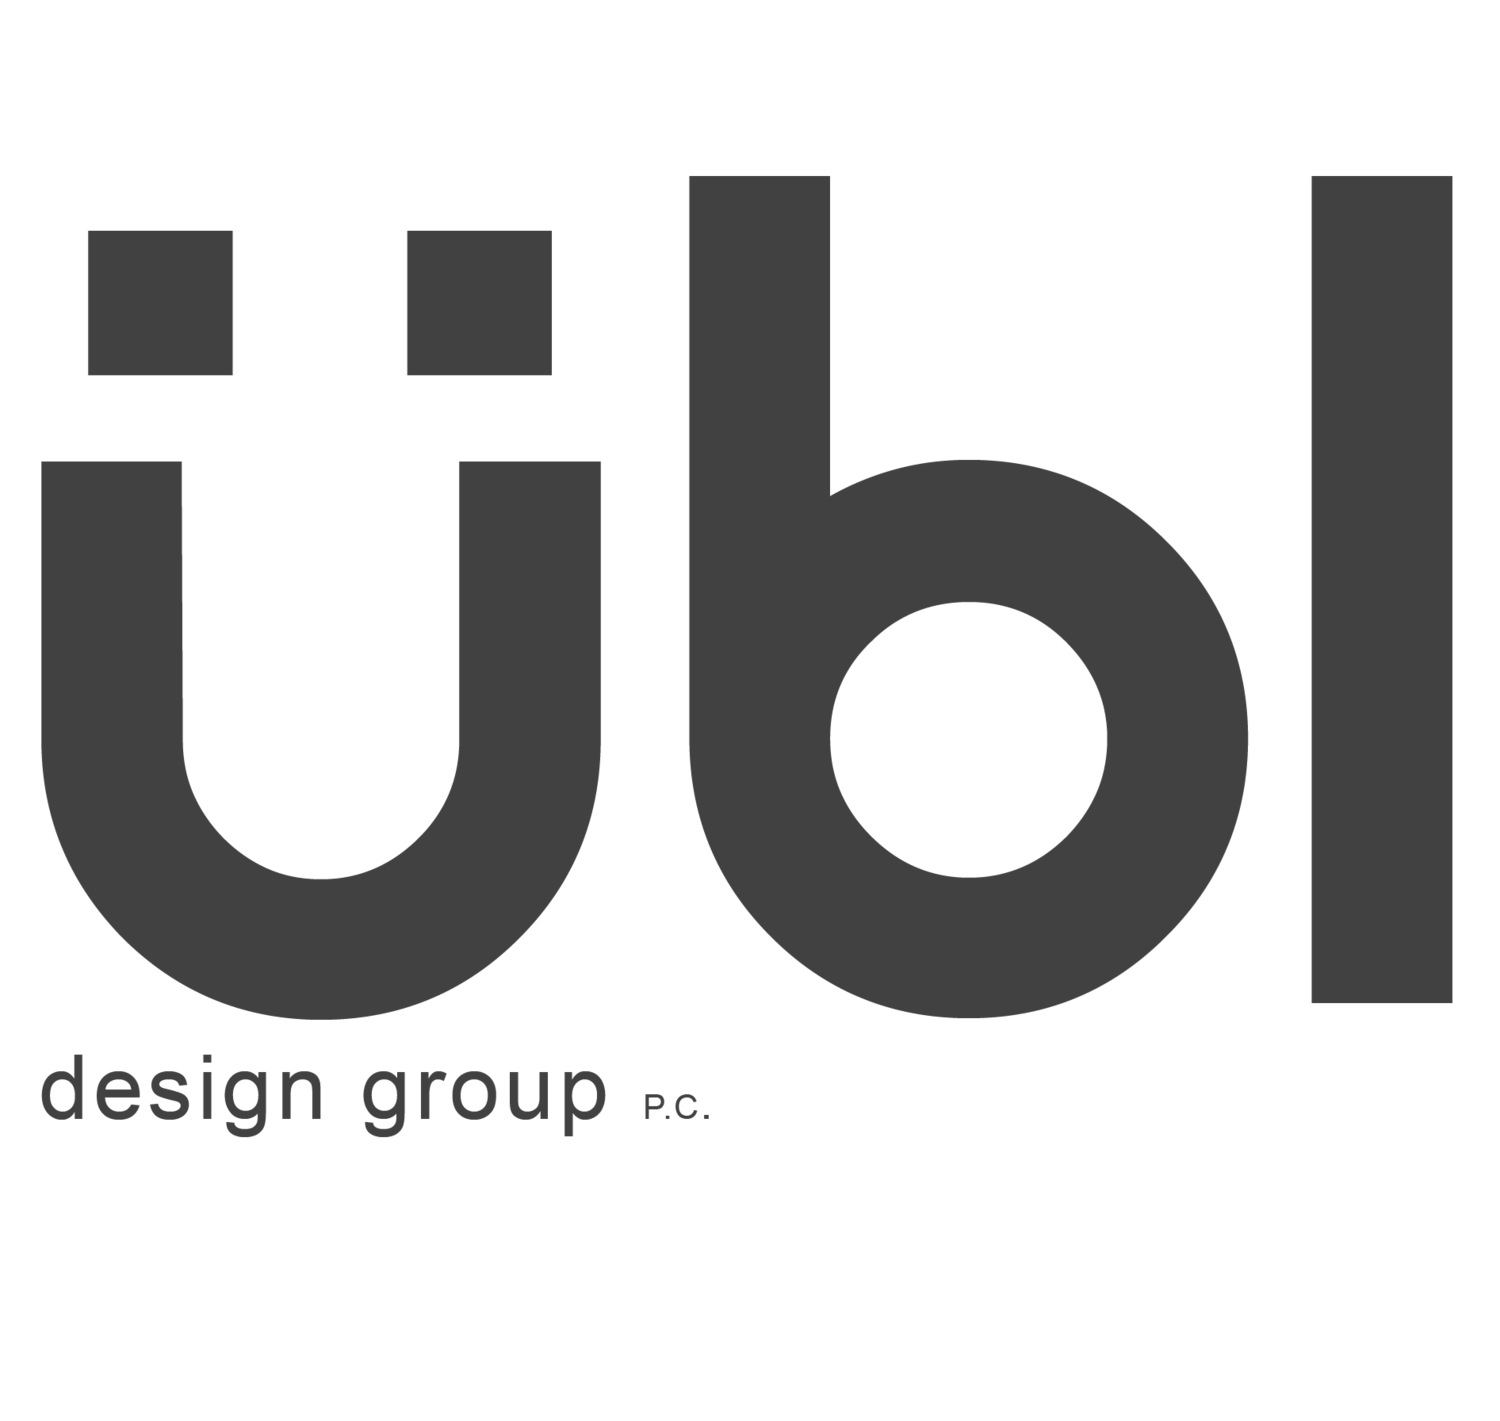 Übl Design Group, P.C.